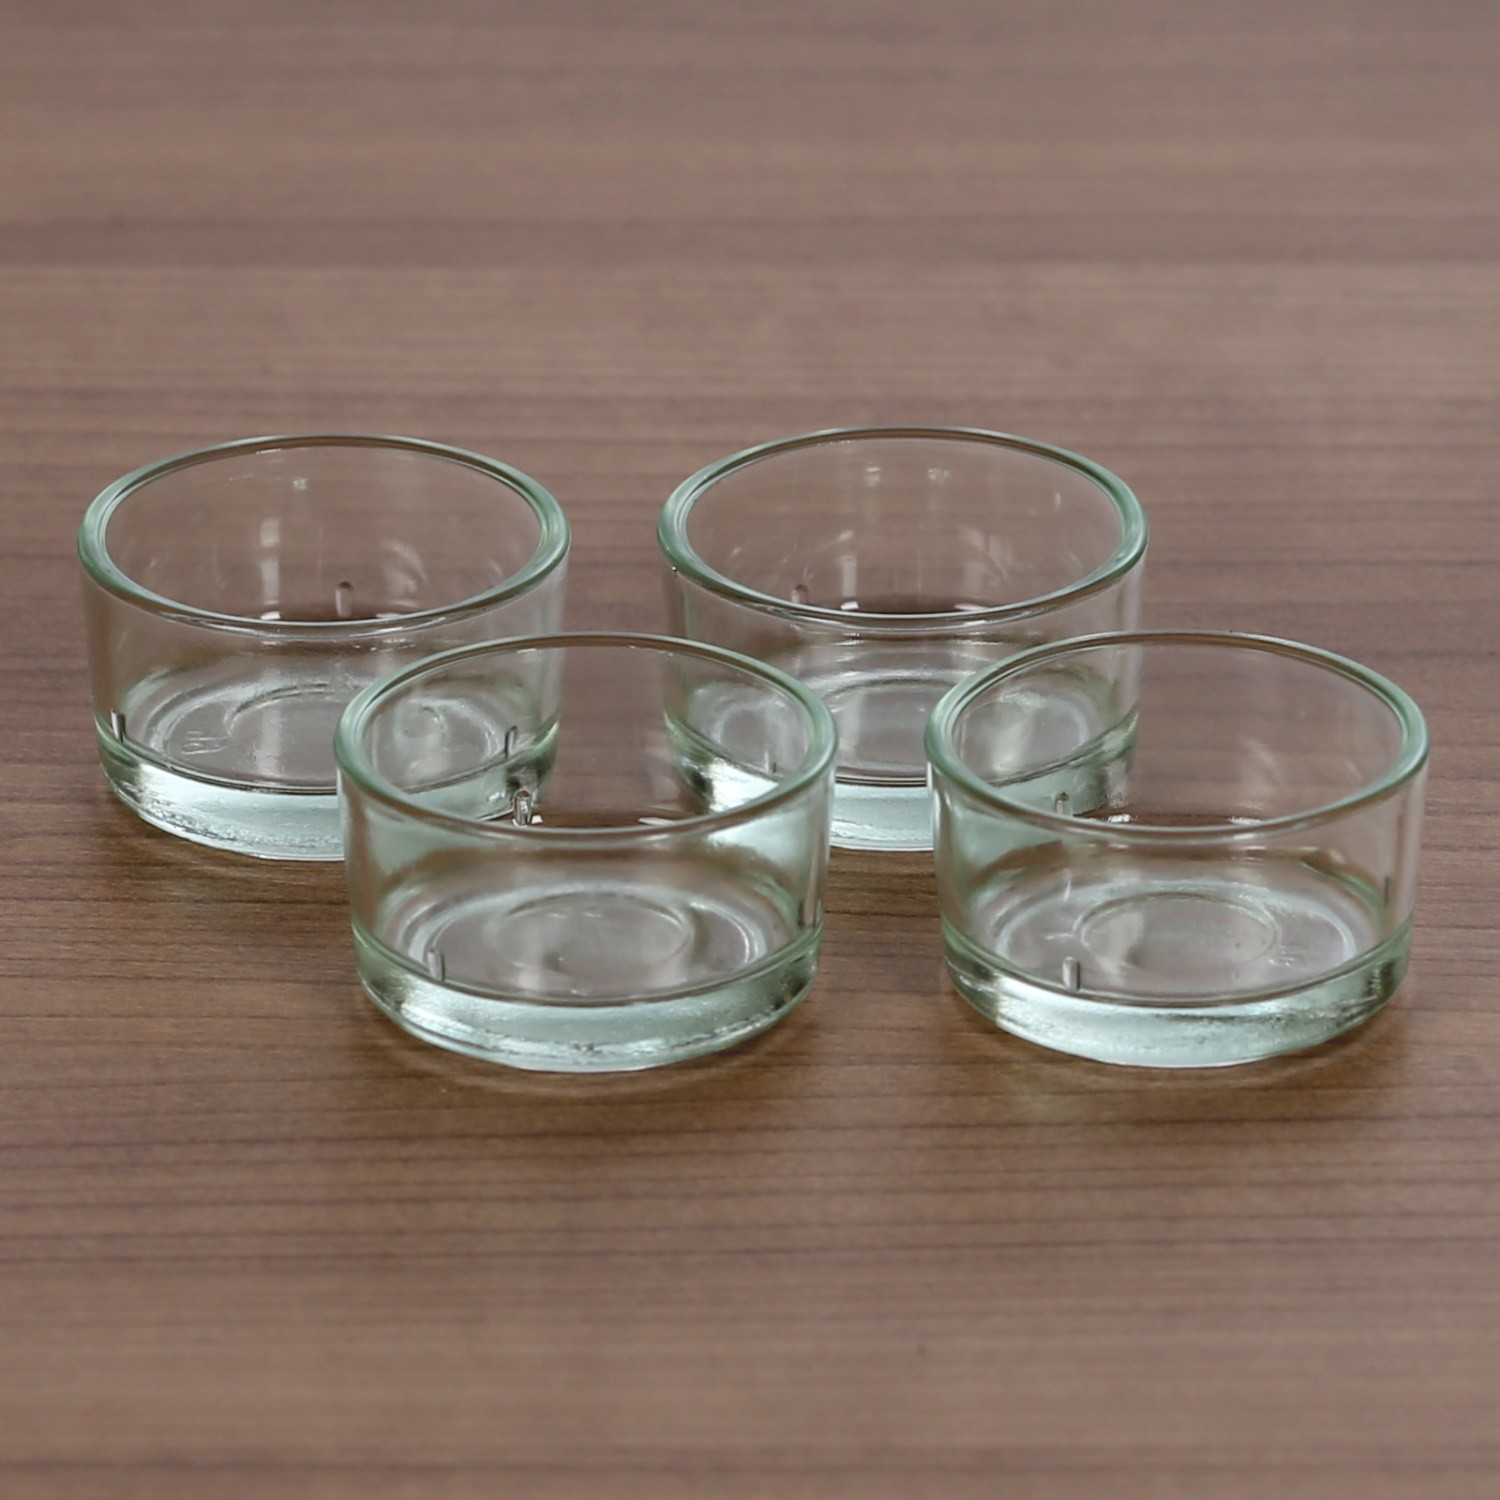 tealight holder cups 40mm glass tea light for standard candles ebay. Black Bedroom Furniture Sets. Home Design Ideas